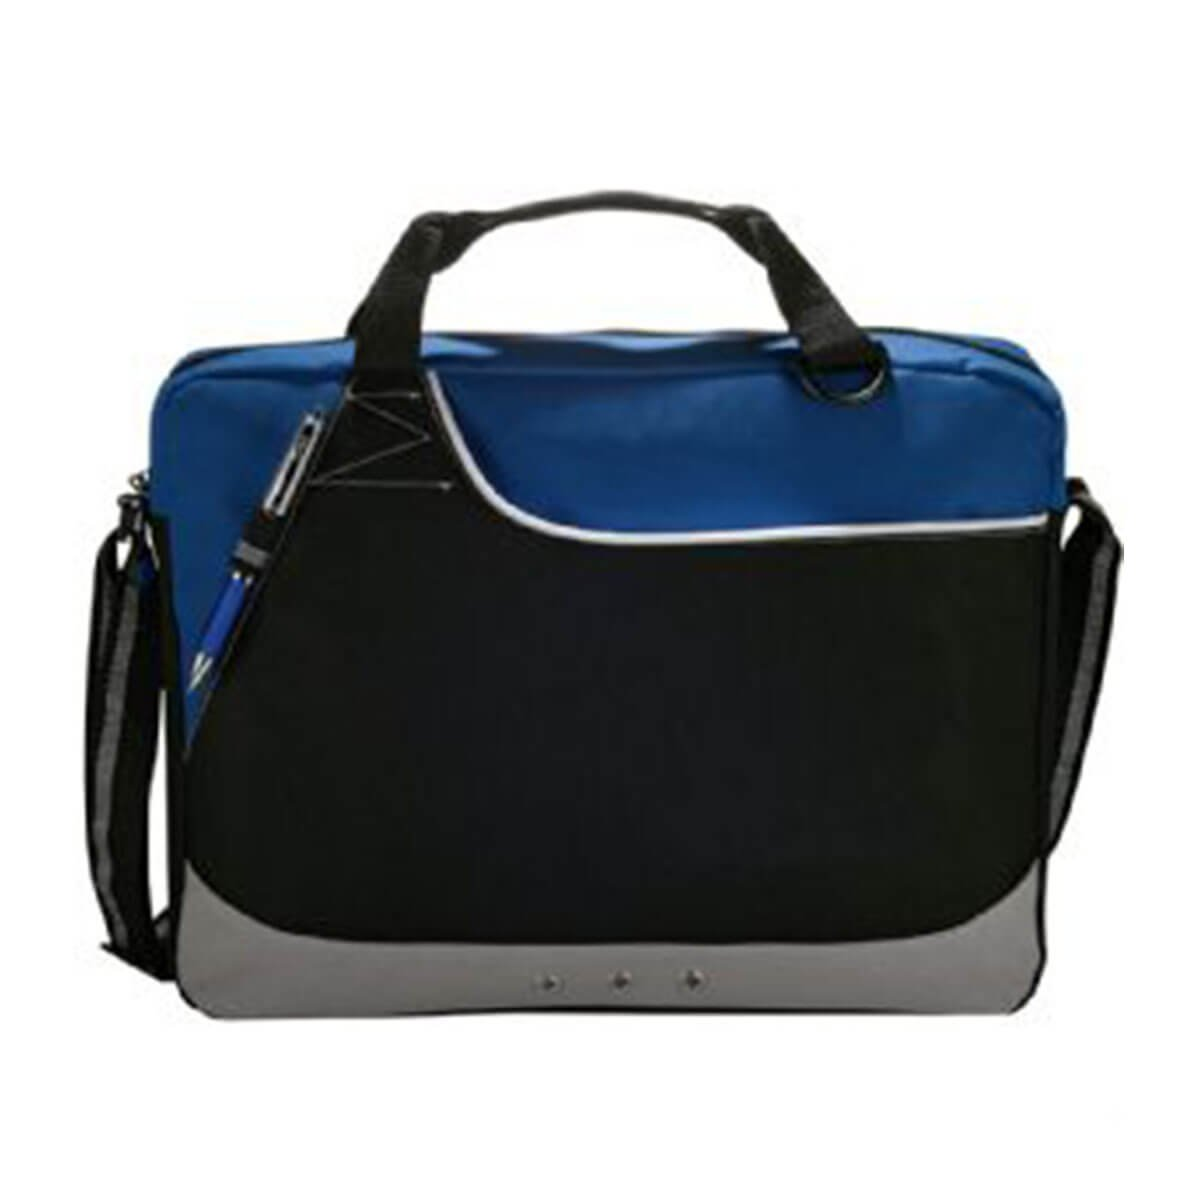 Rubble Brief Bag-Blue and Black with White Trim.